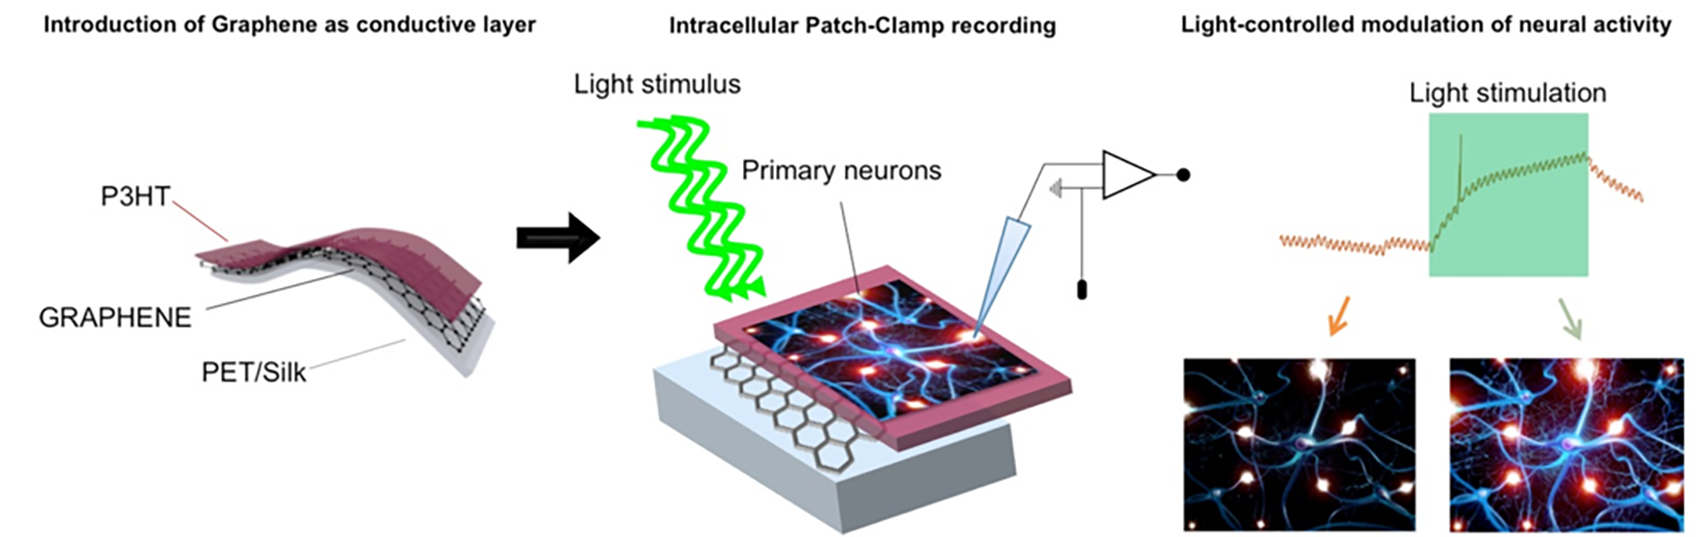 Schematic illustrating the Graphene-based interfaces for photostimulation of excitable tissues.